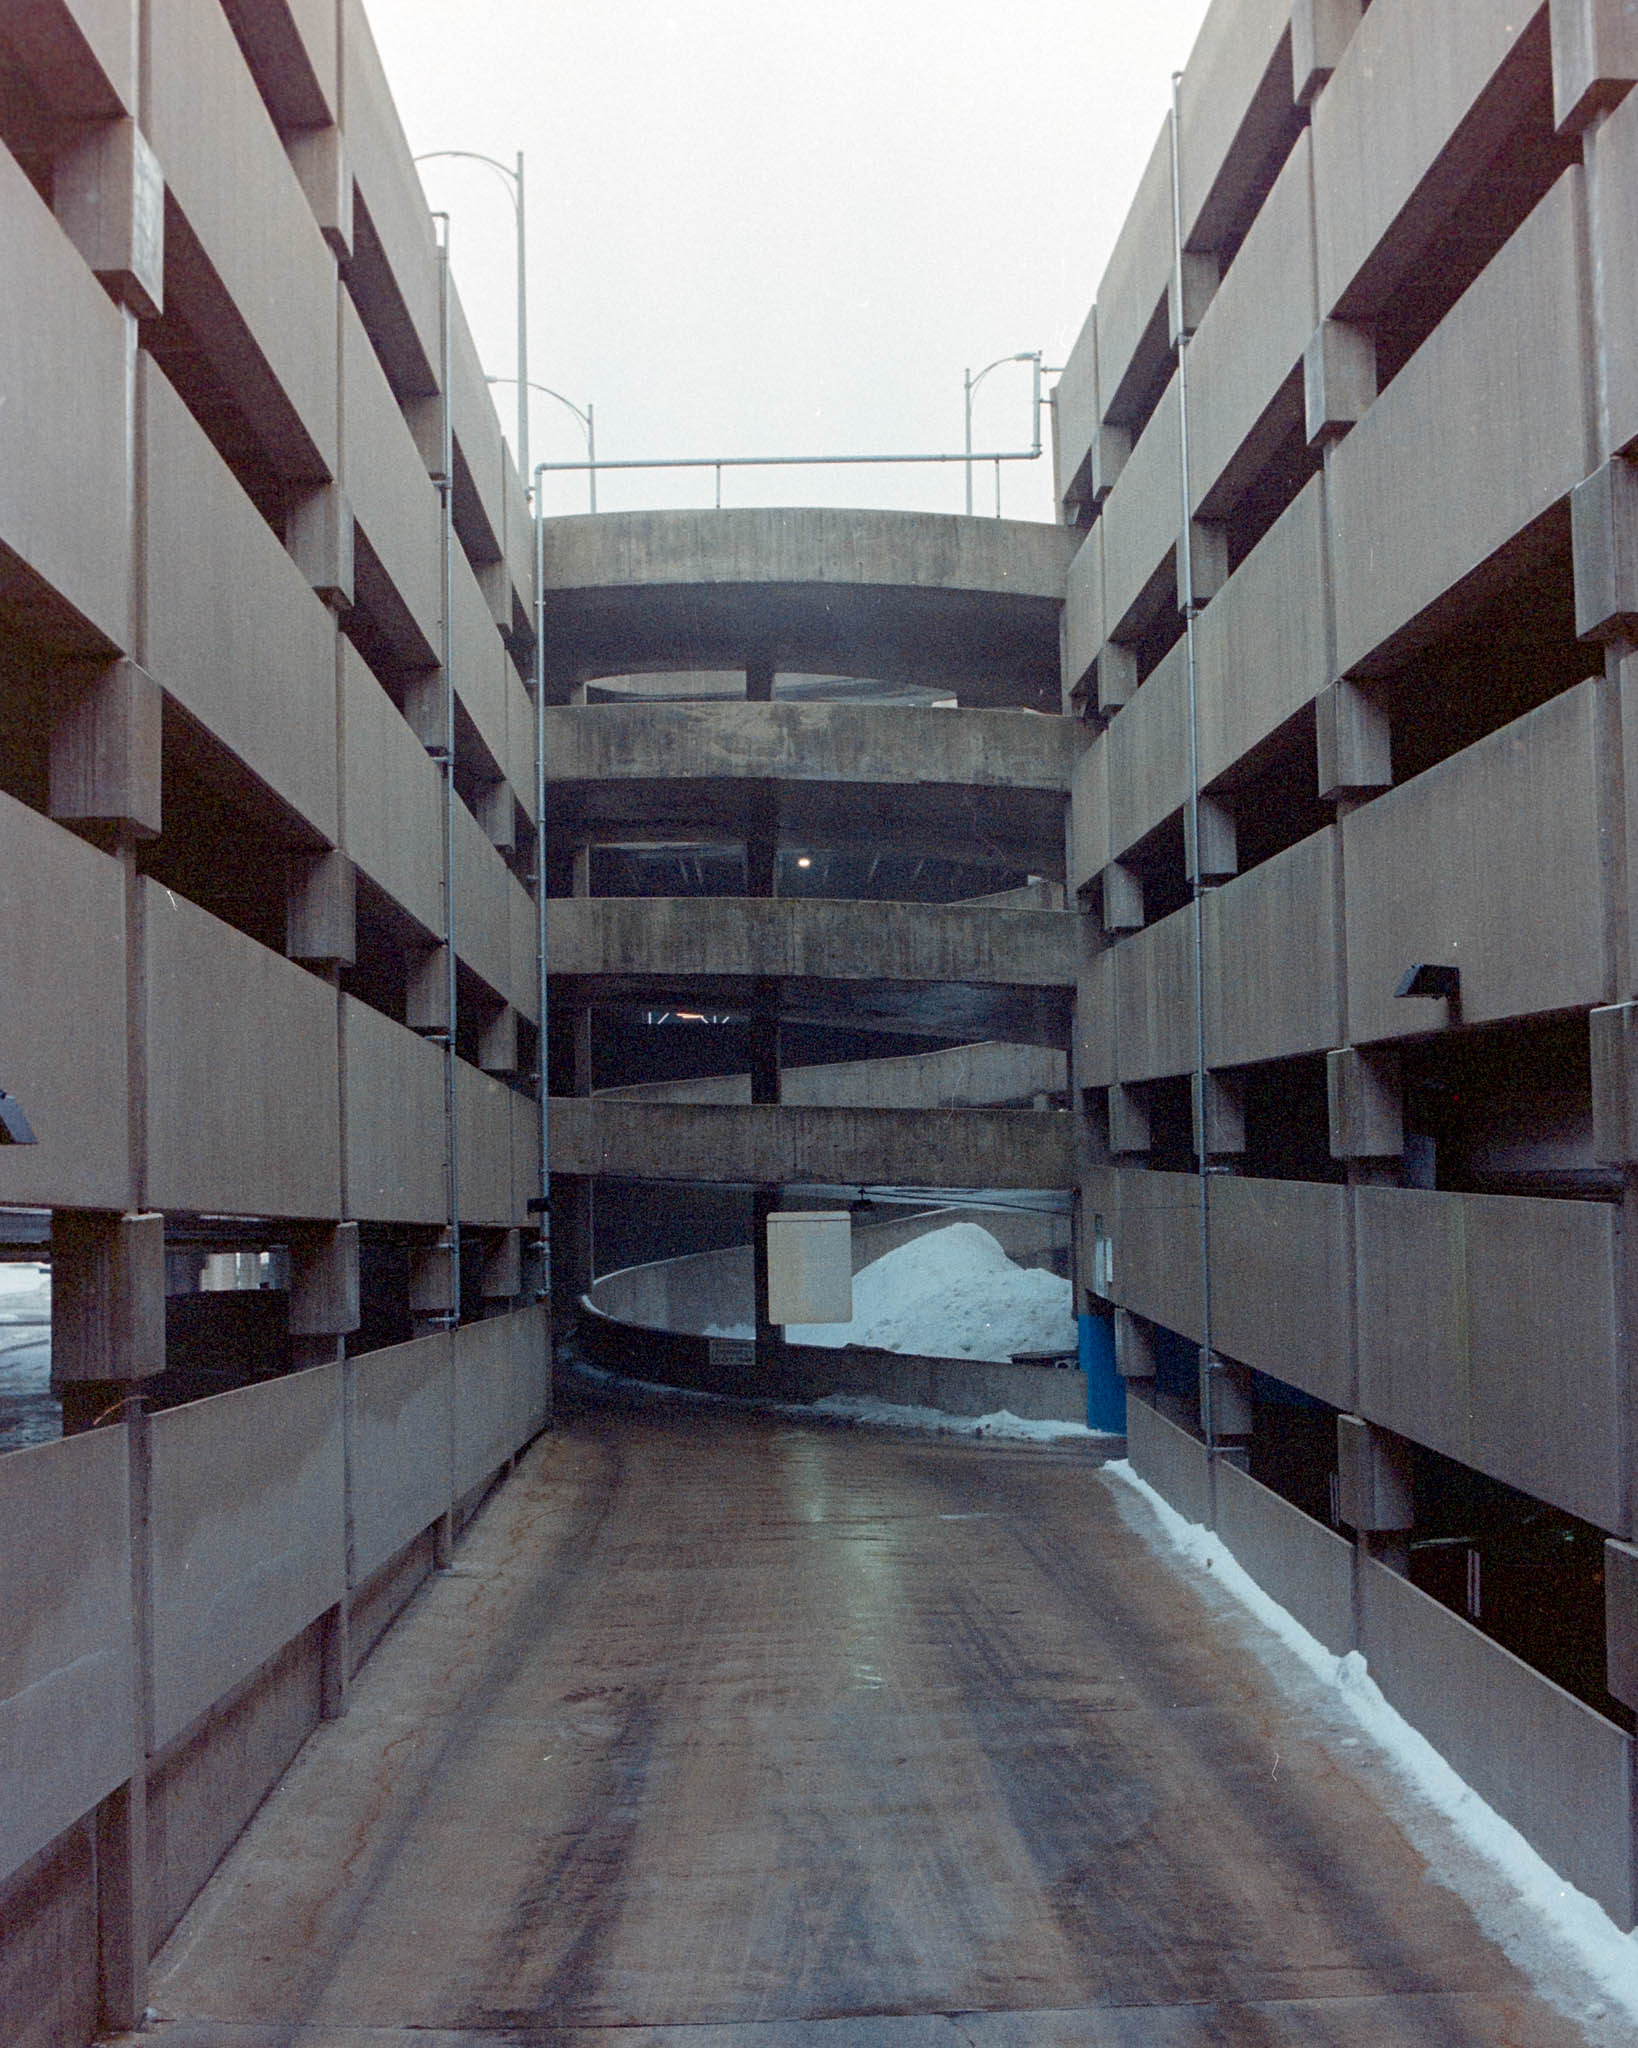 Parking ramp in downtown CR. Camera: Nikon N2020 with Fujifilm Superia 400